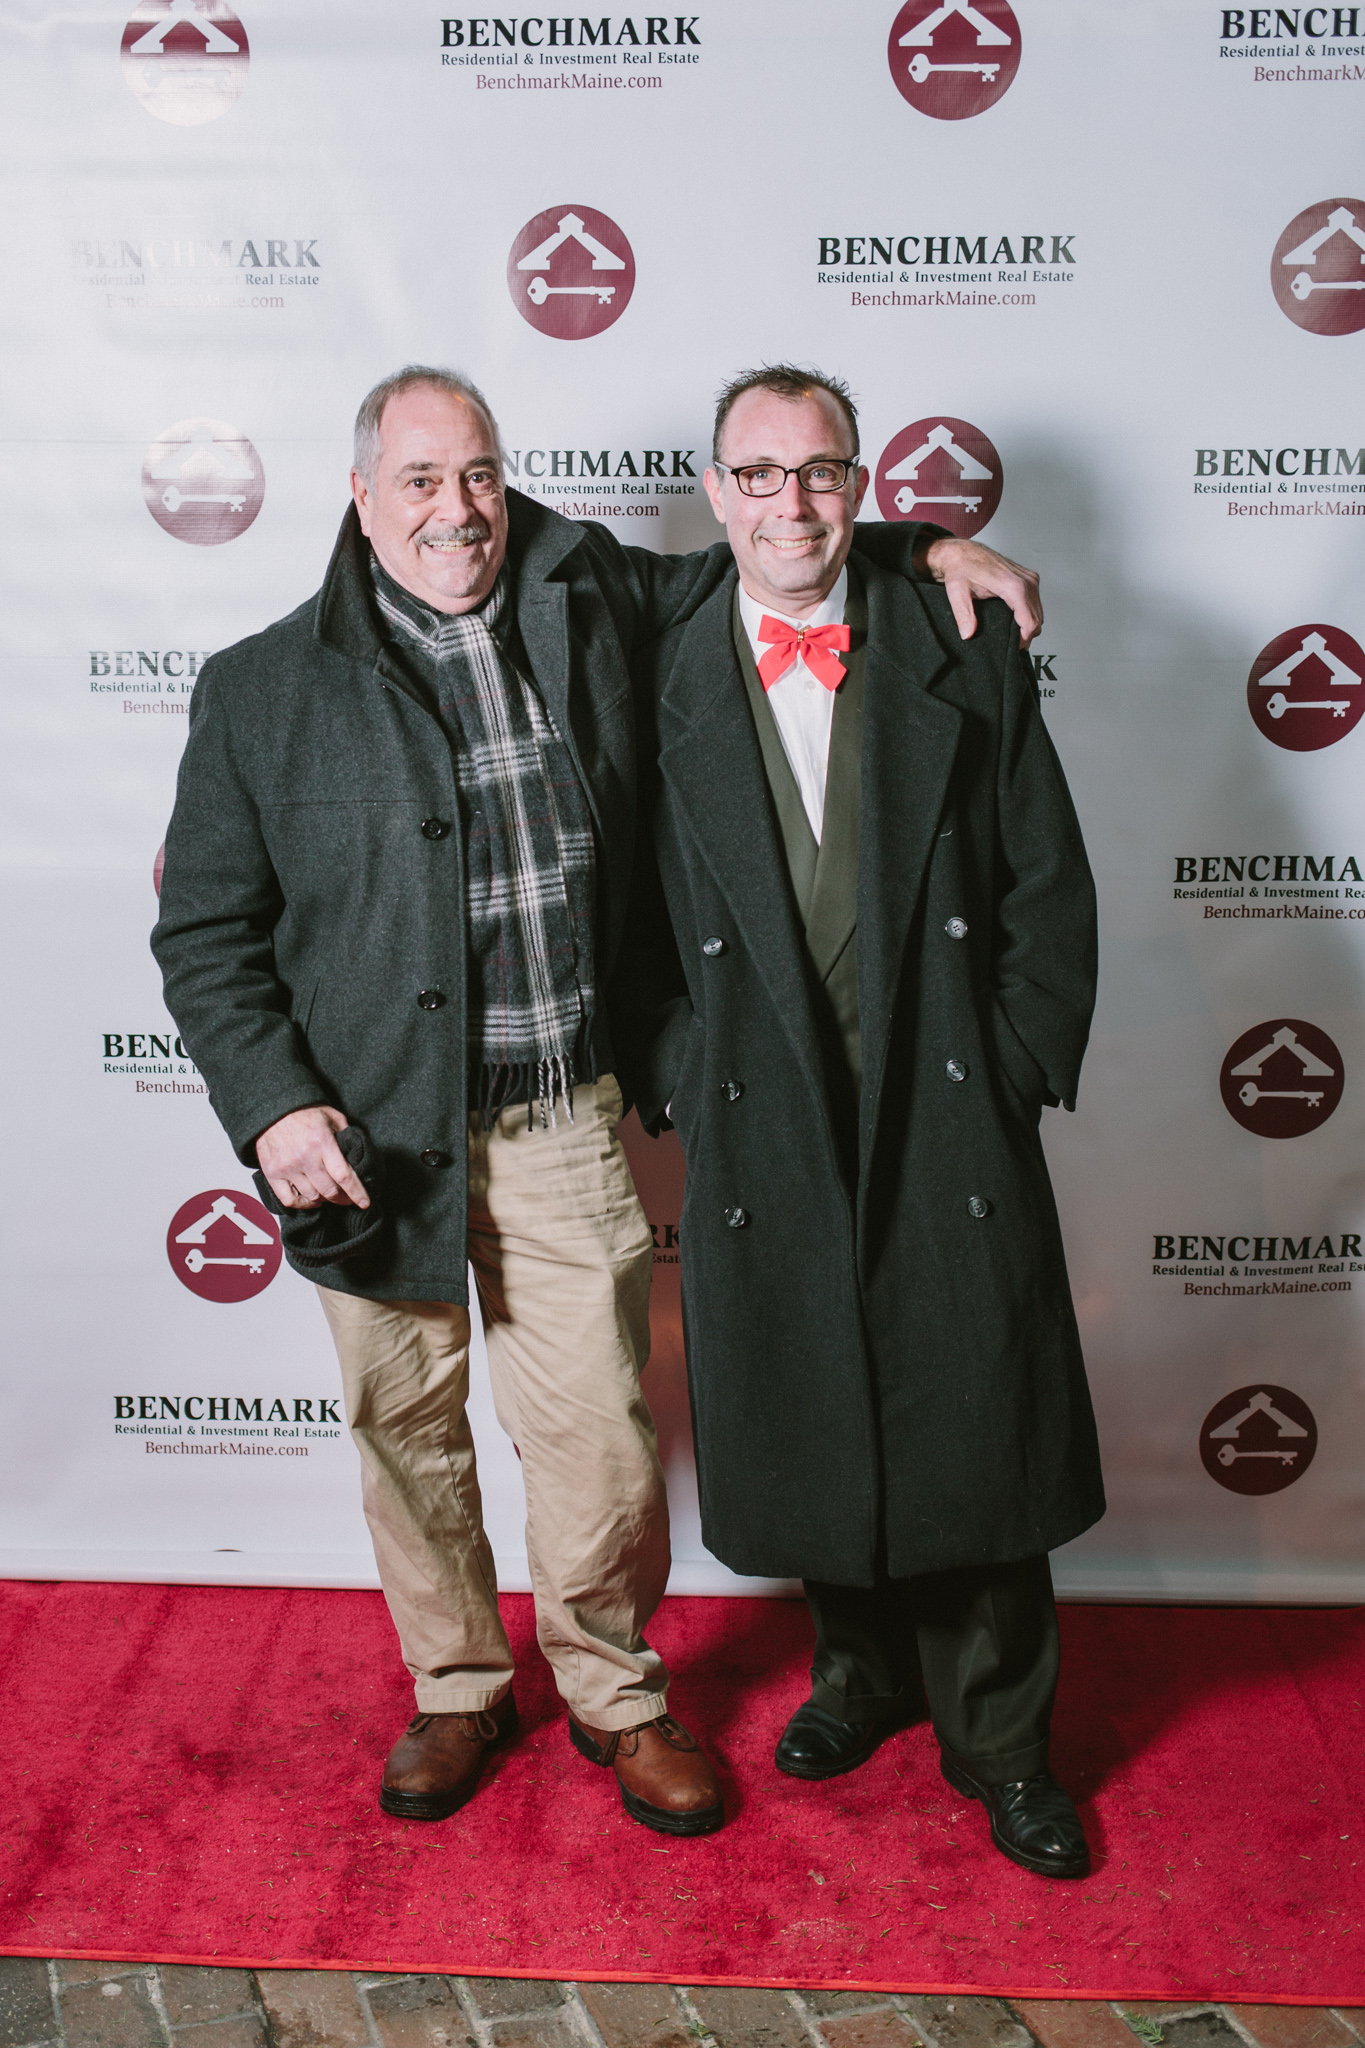 Benchmark_Holiday_Party_SR-026.jpg